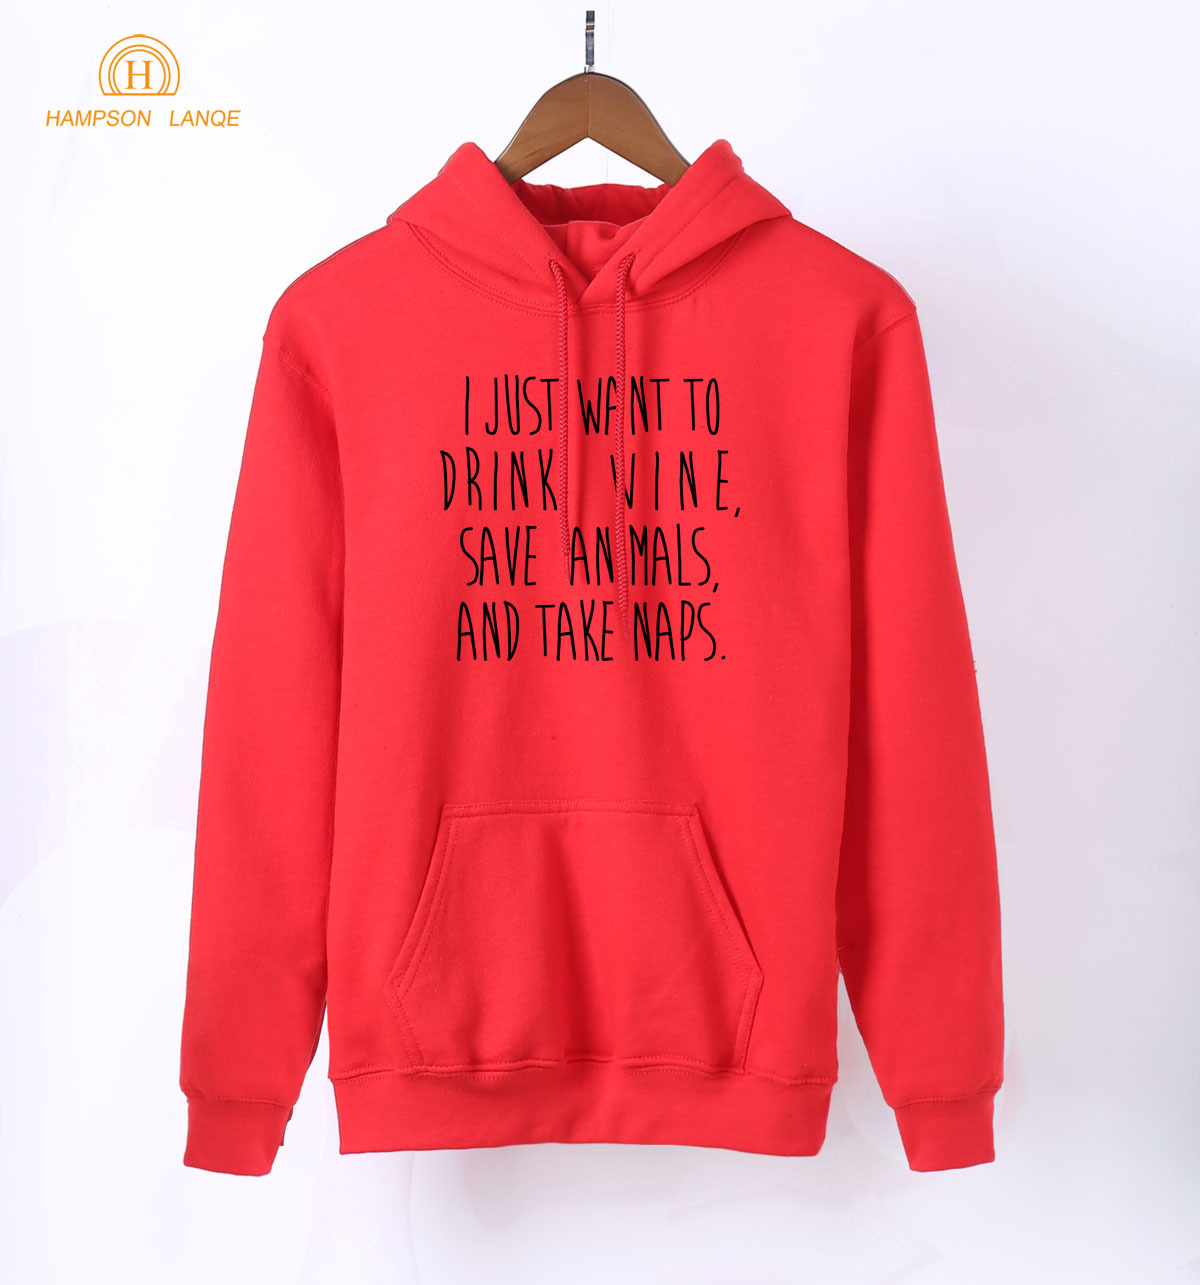 2019 Spring Autumn Women Sweatshirts l Just Want To Drink Wine Save Animals And Take Naps Funny Women